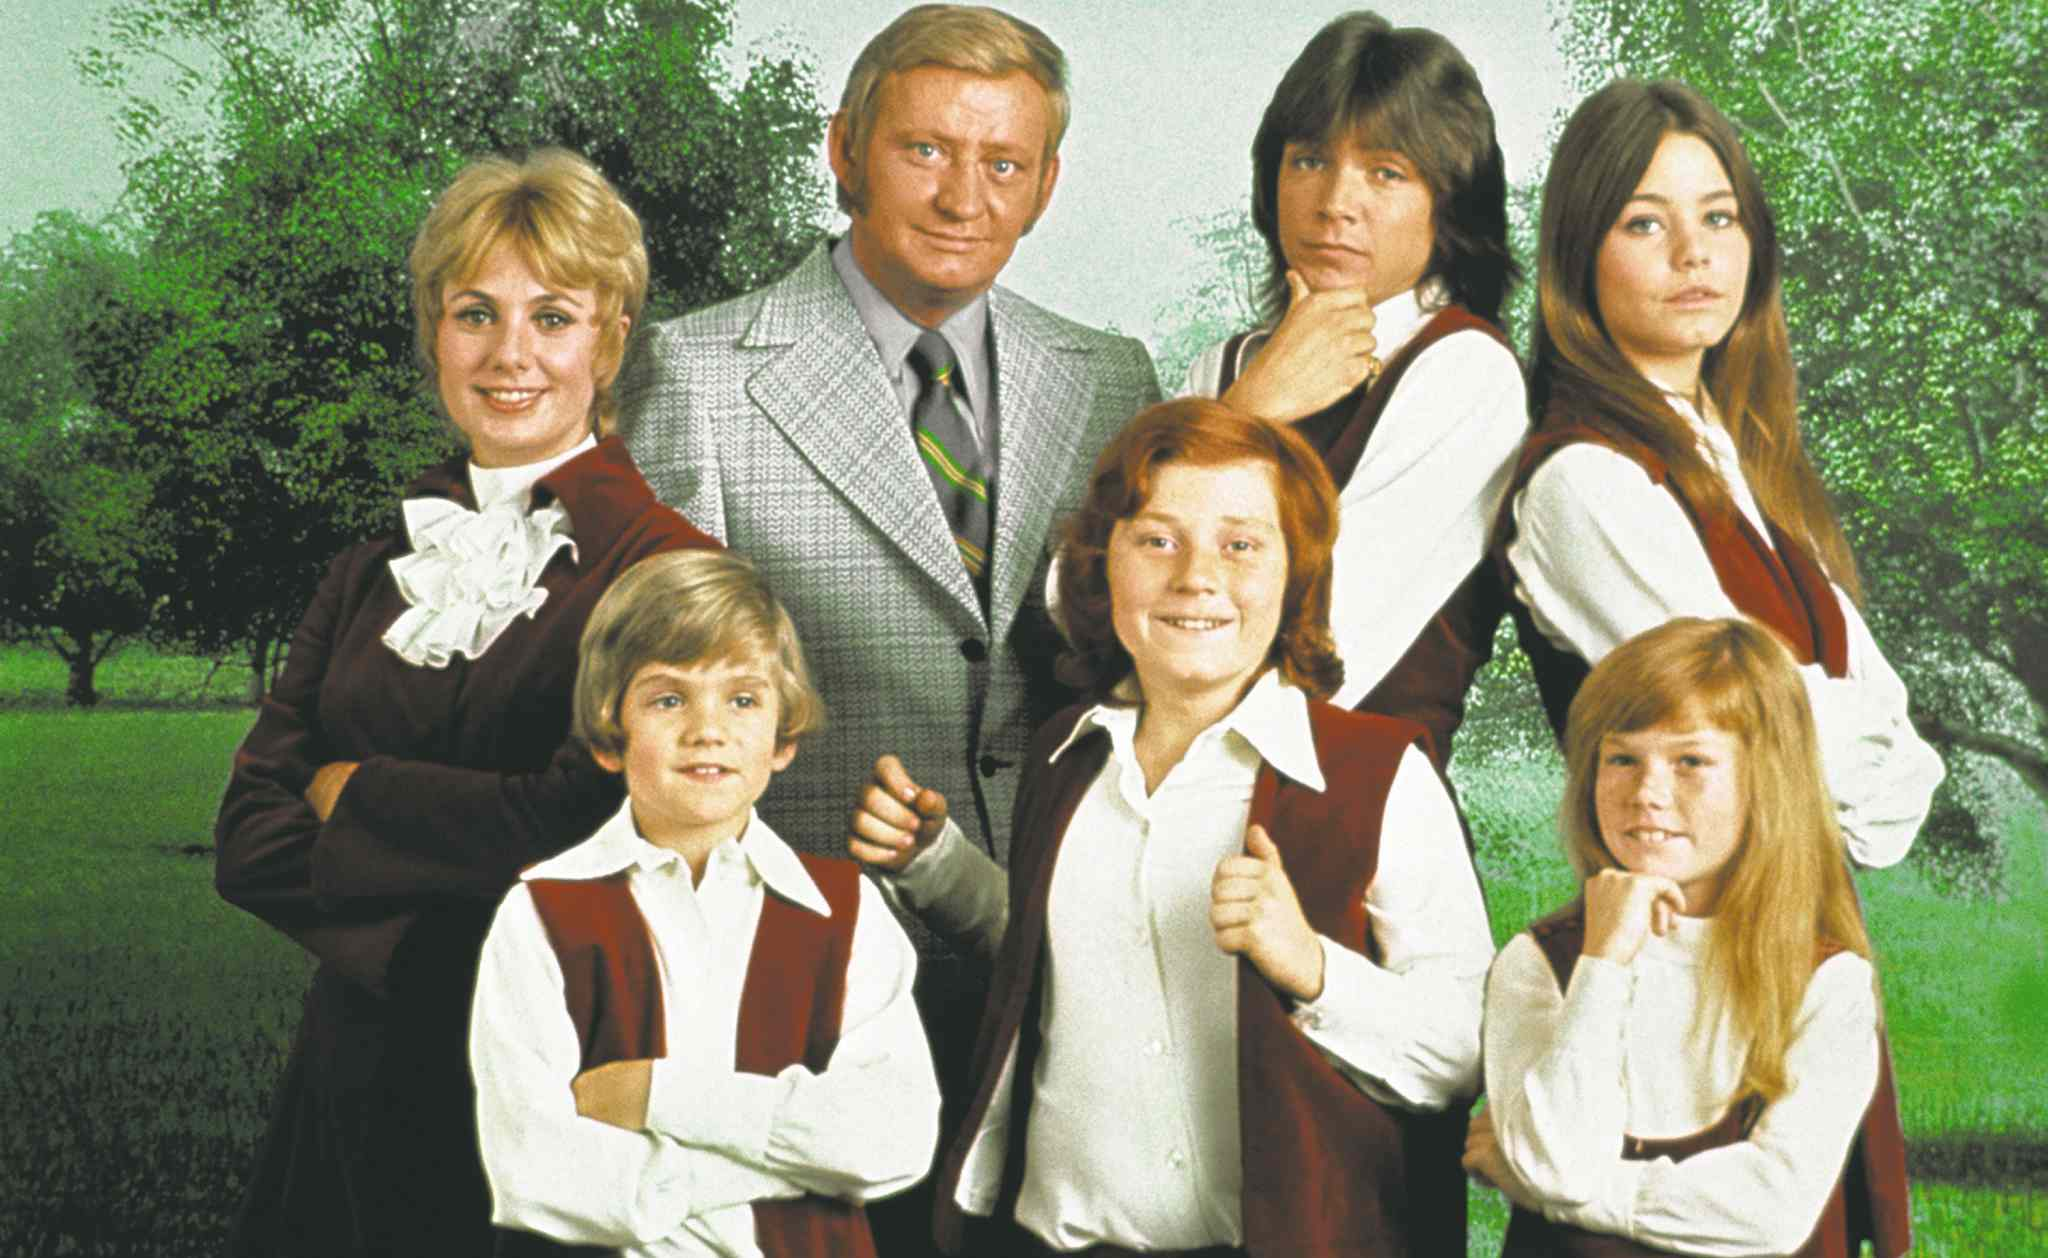 This 1970 photo released by courtesy of Sony Pictures Television shows, back row, from left, cast members, Shirley Jones, Dave Madden, David Cassidy, Susan Dey, and front row, from left, Brian Forster, Danny Bonaduce and Suzanne Crough of the television series,